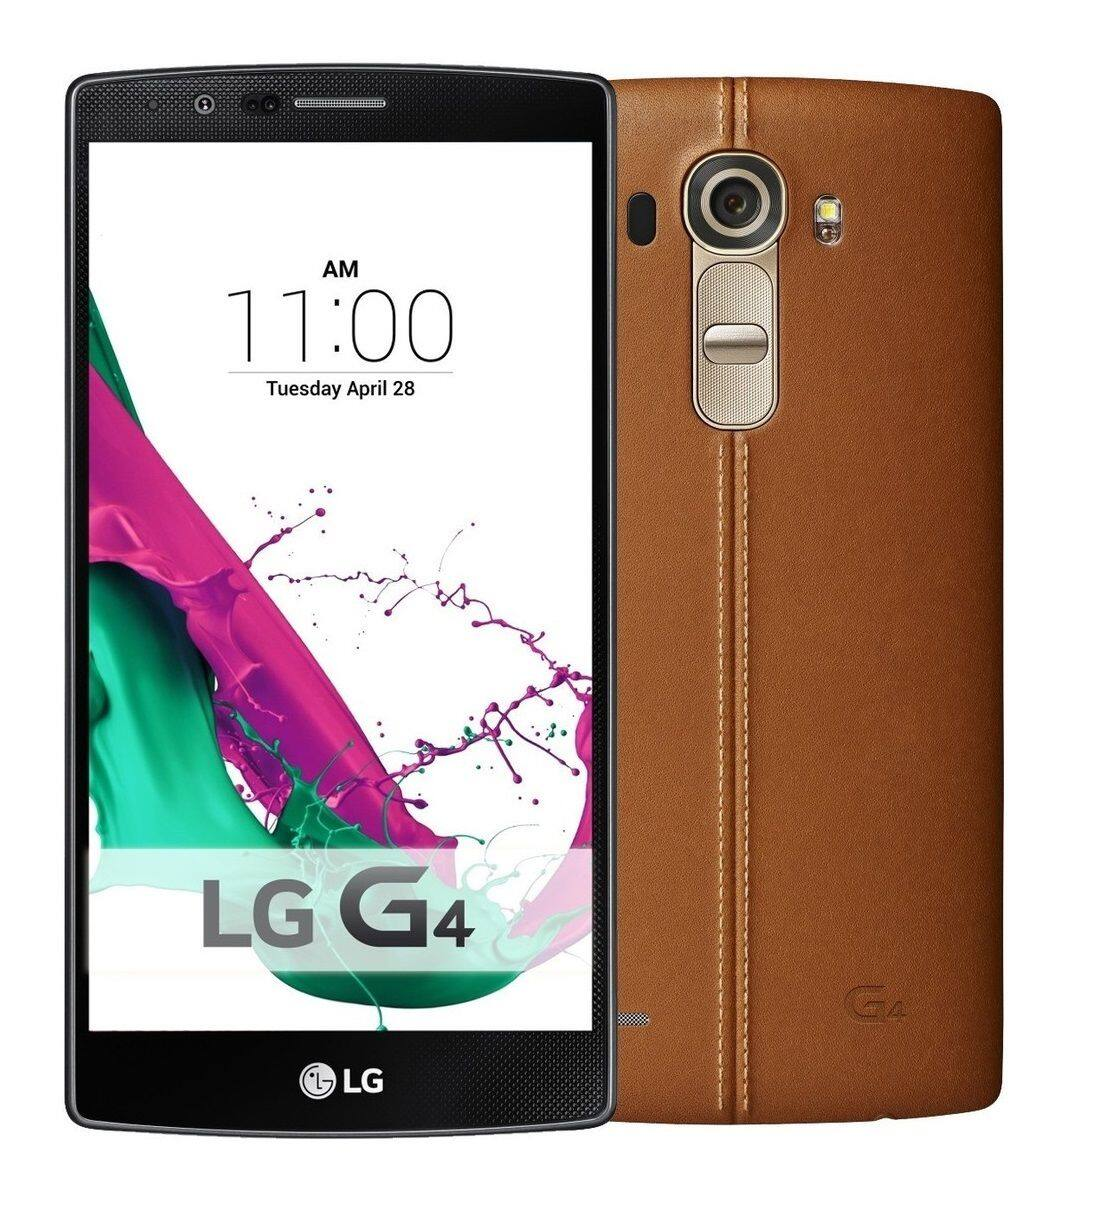 LG G4 H815 32GB Factory Unlocked GSM 4G LTE Smartphone $380 + Free Shipping (eBay Daily Deal)